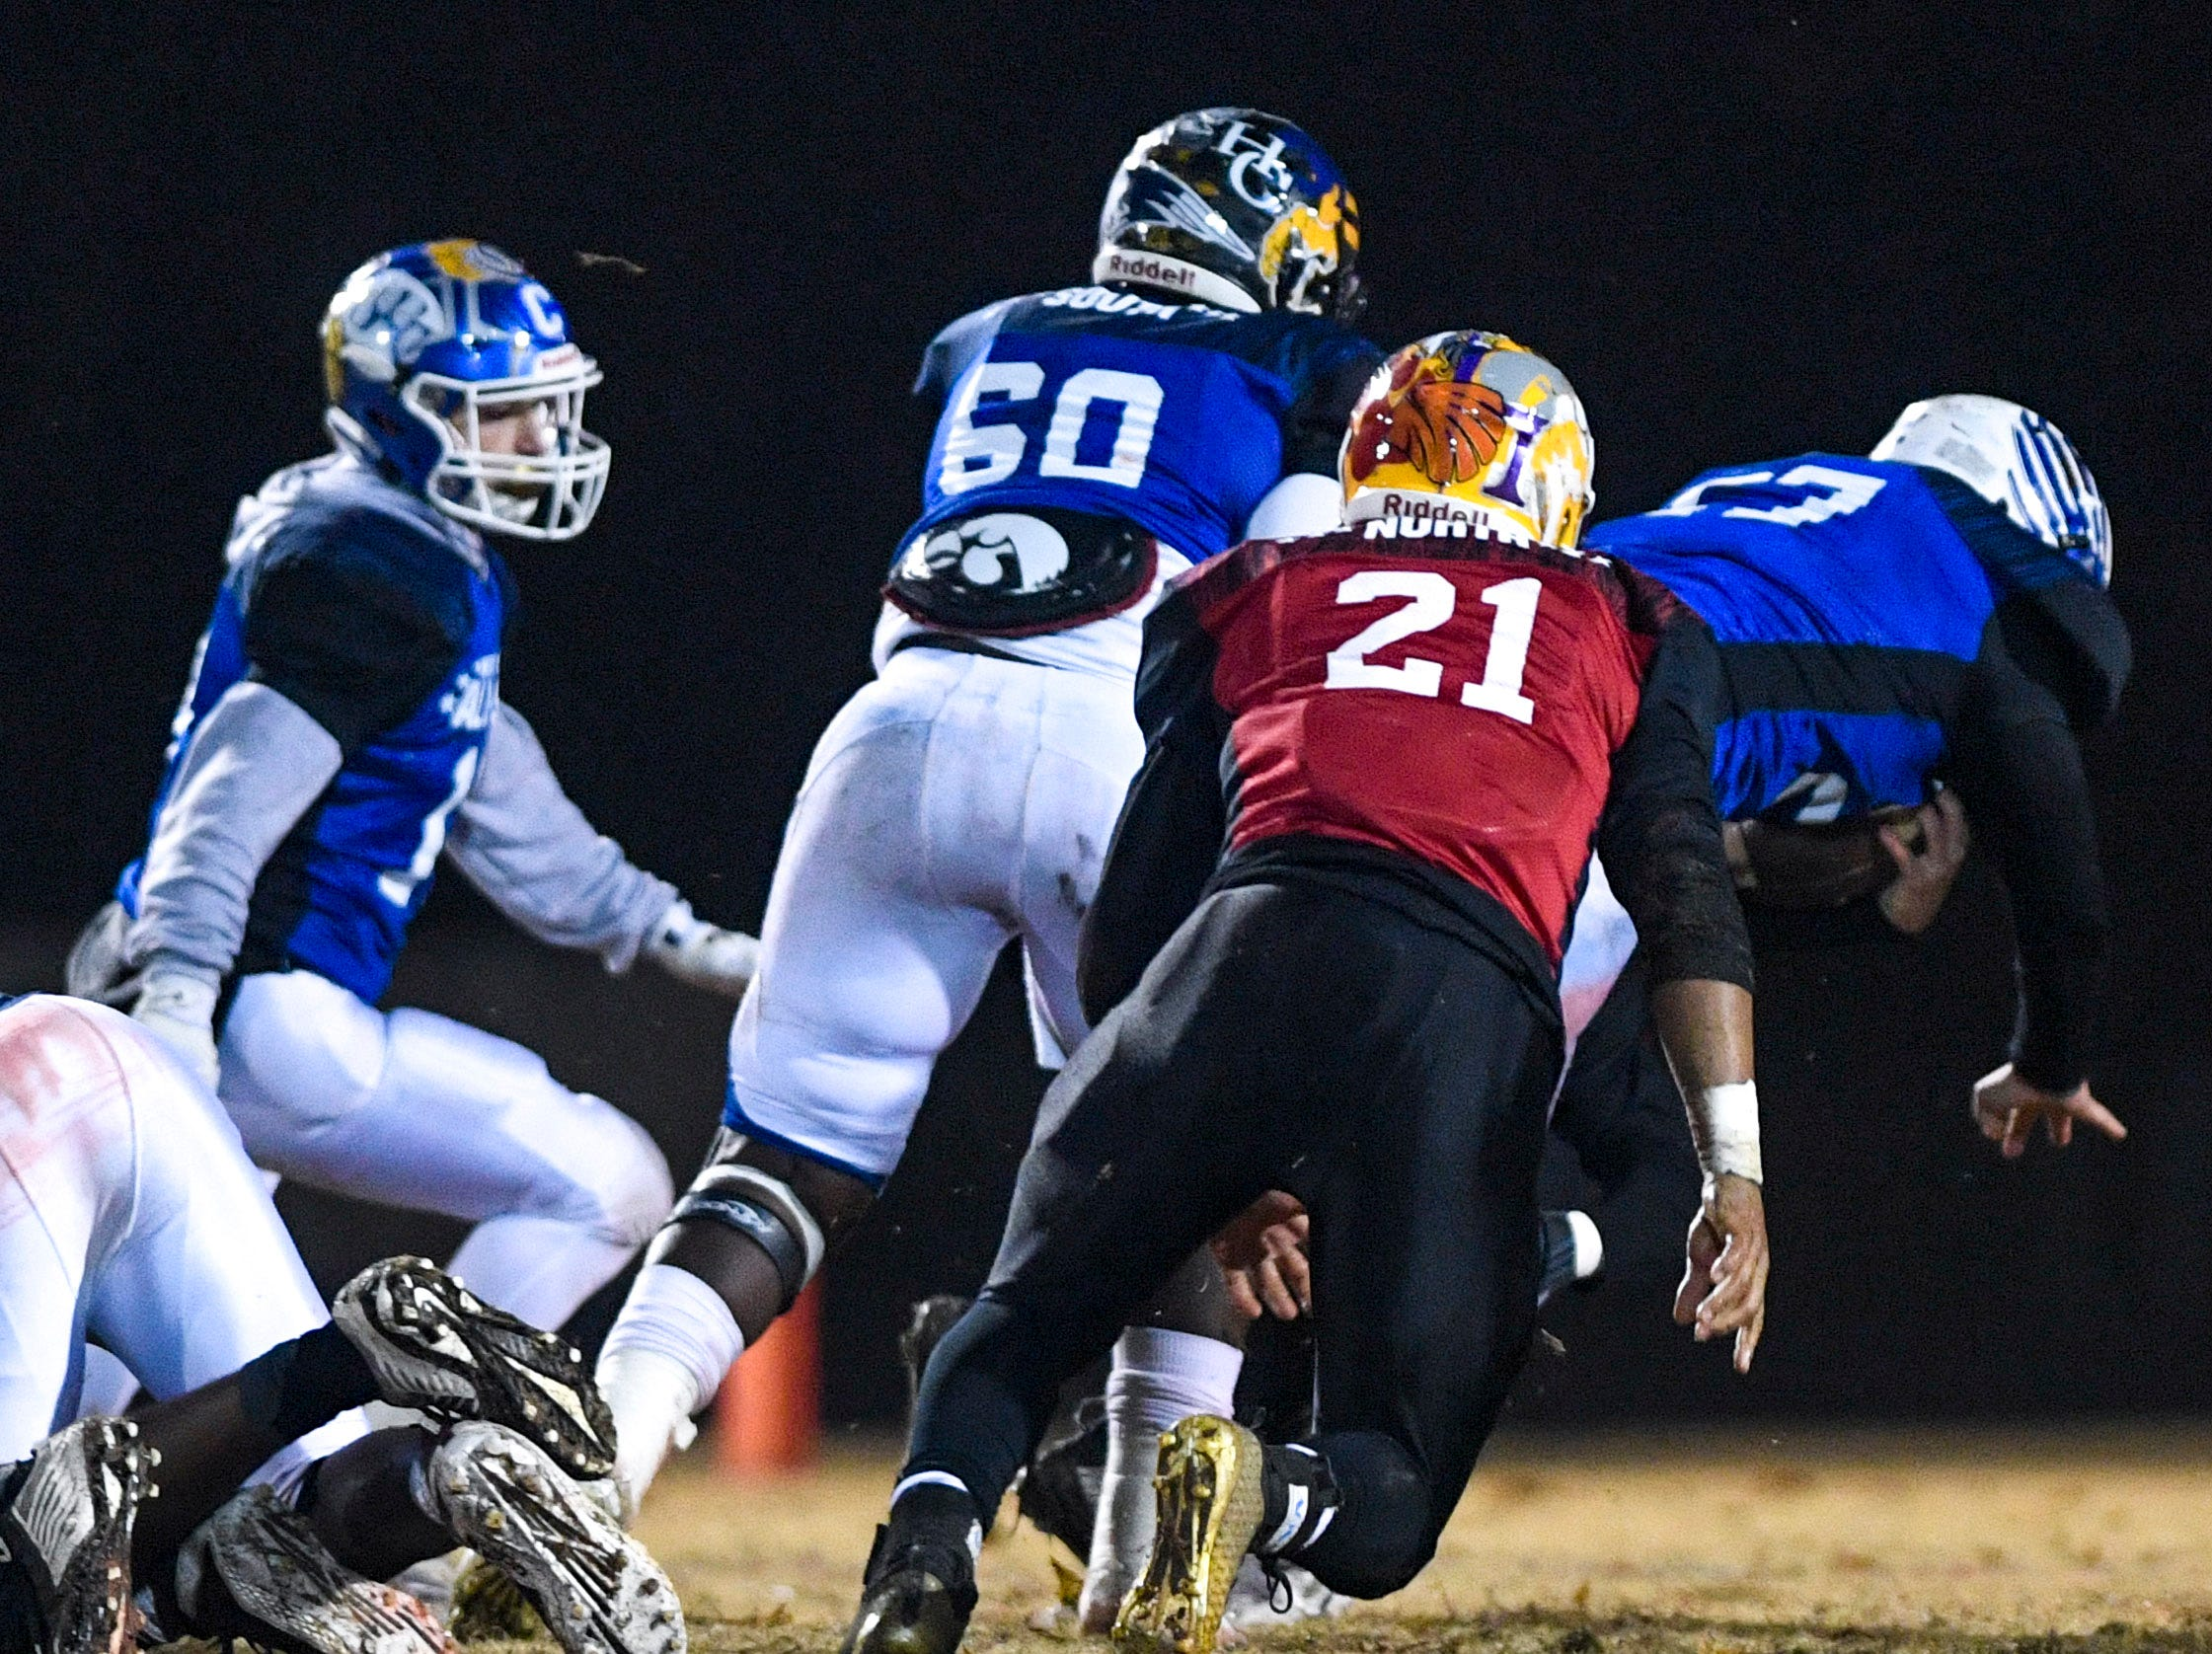 Players swarm after Chester Co's Peyton Doles (27) after Doles recovered a fumble during the West Tennessee All-Star football game at University School of Jackson in Jackson, Tenn., on Friday, Dec. 7, 2018.